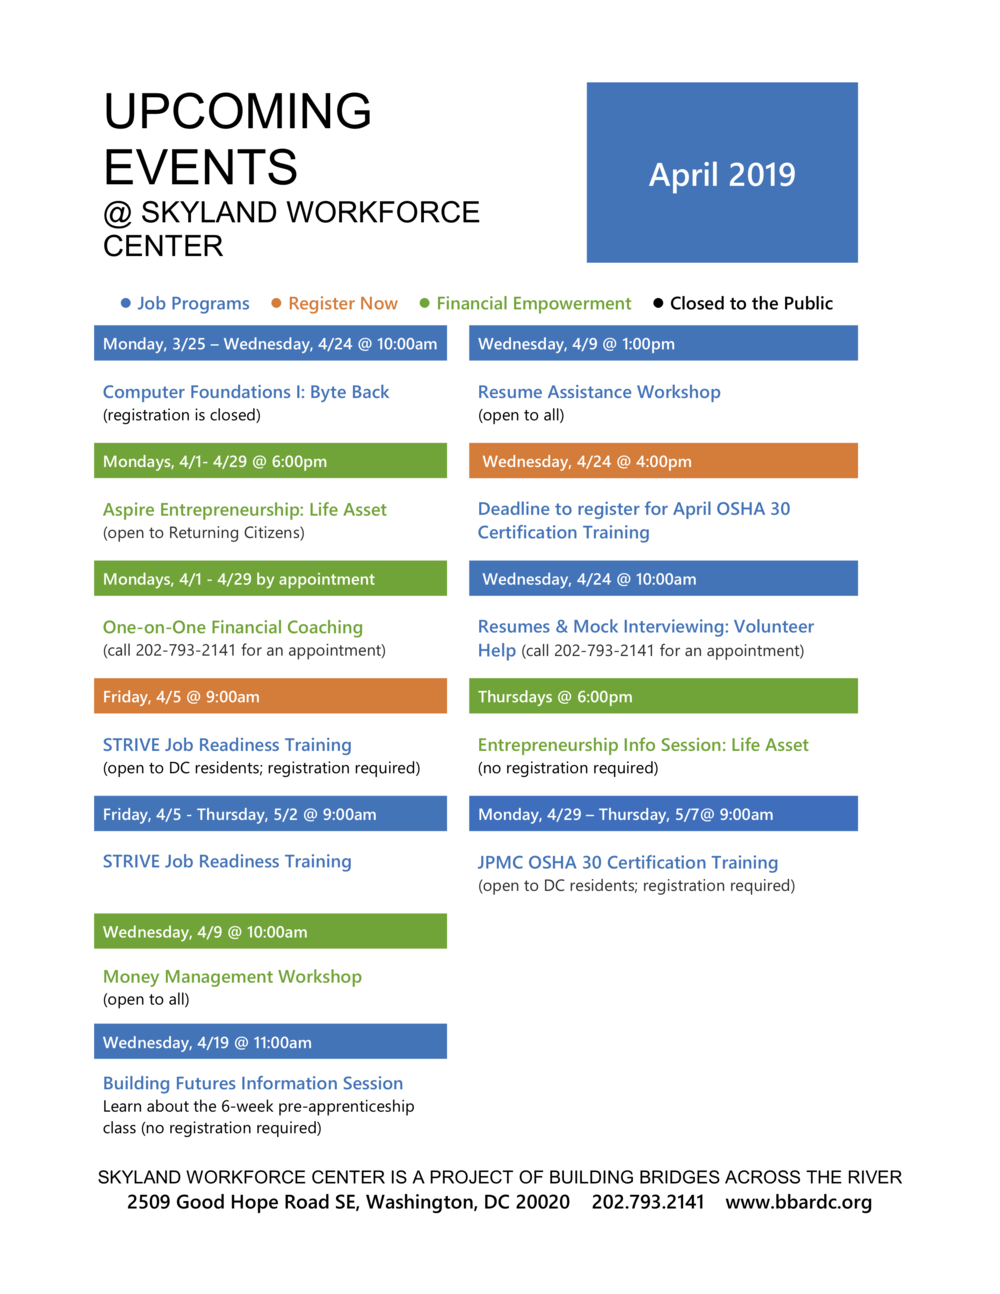 April 2019 Upcoming Events Calendar 04.2019.png